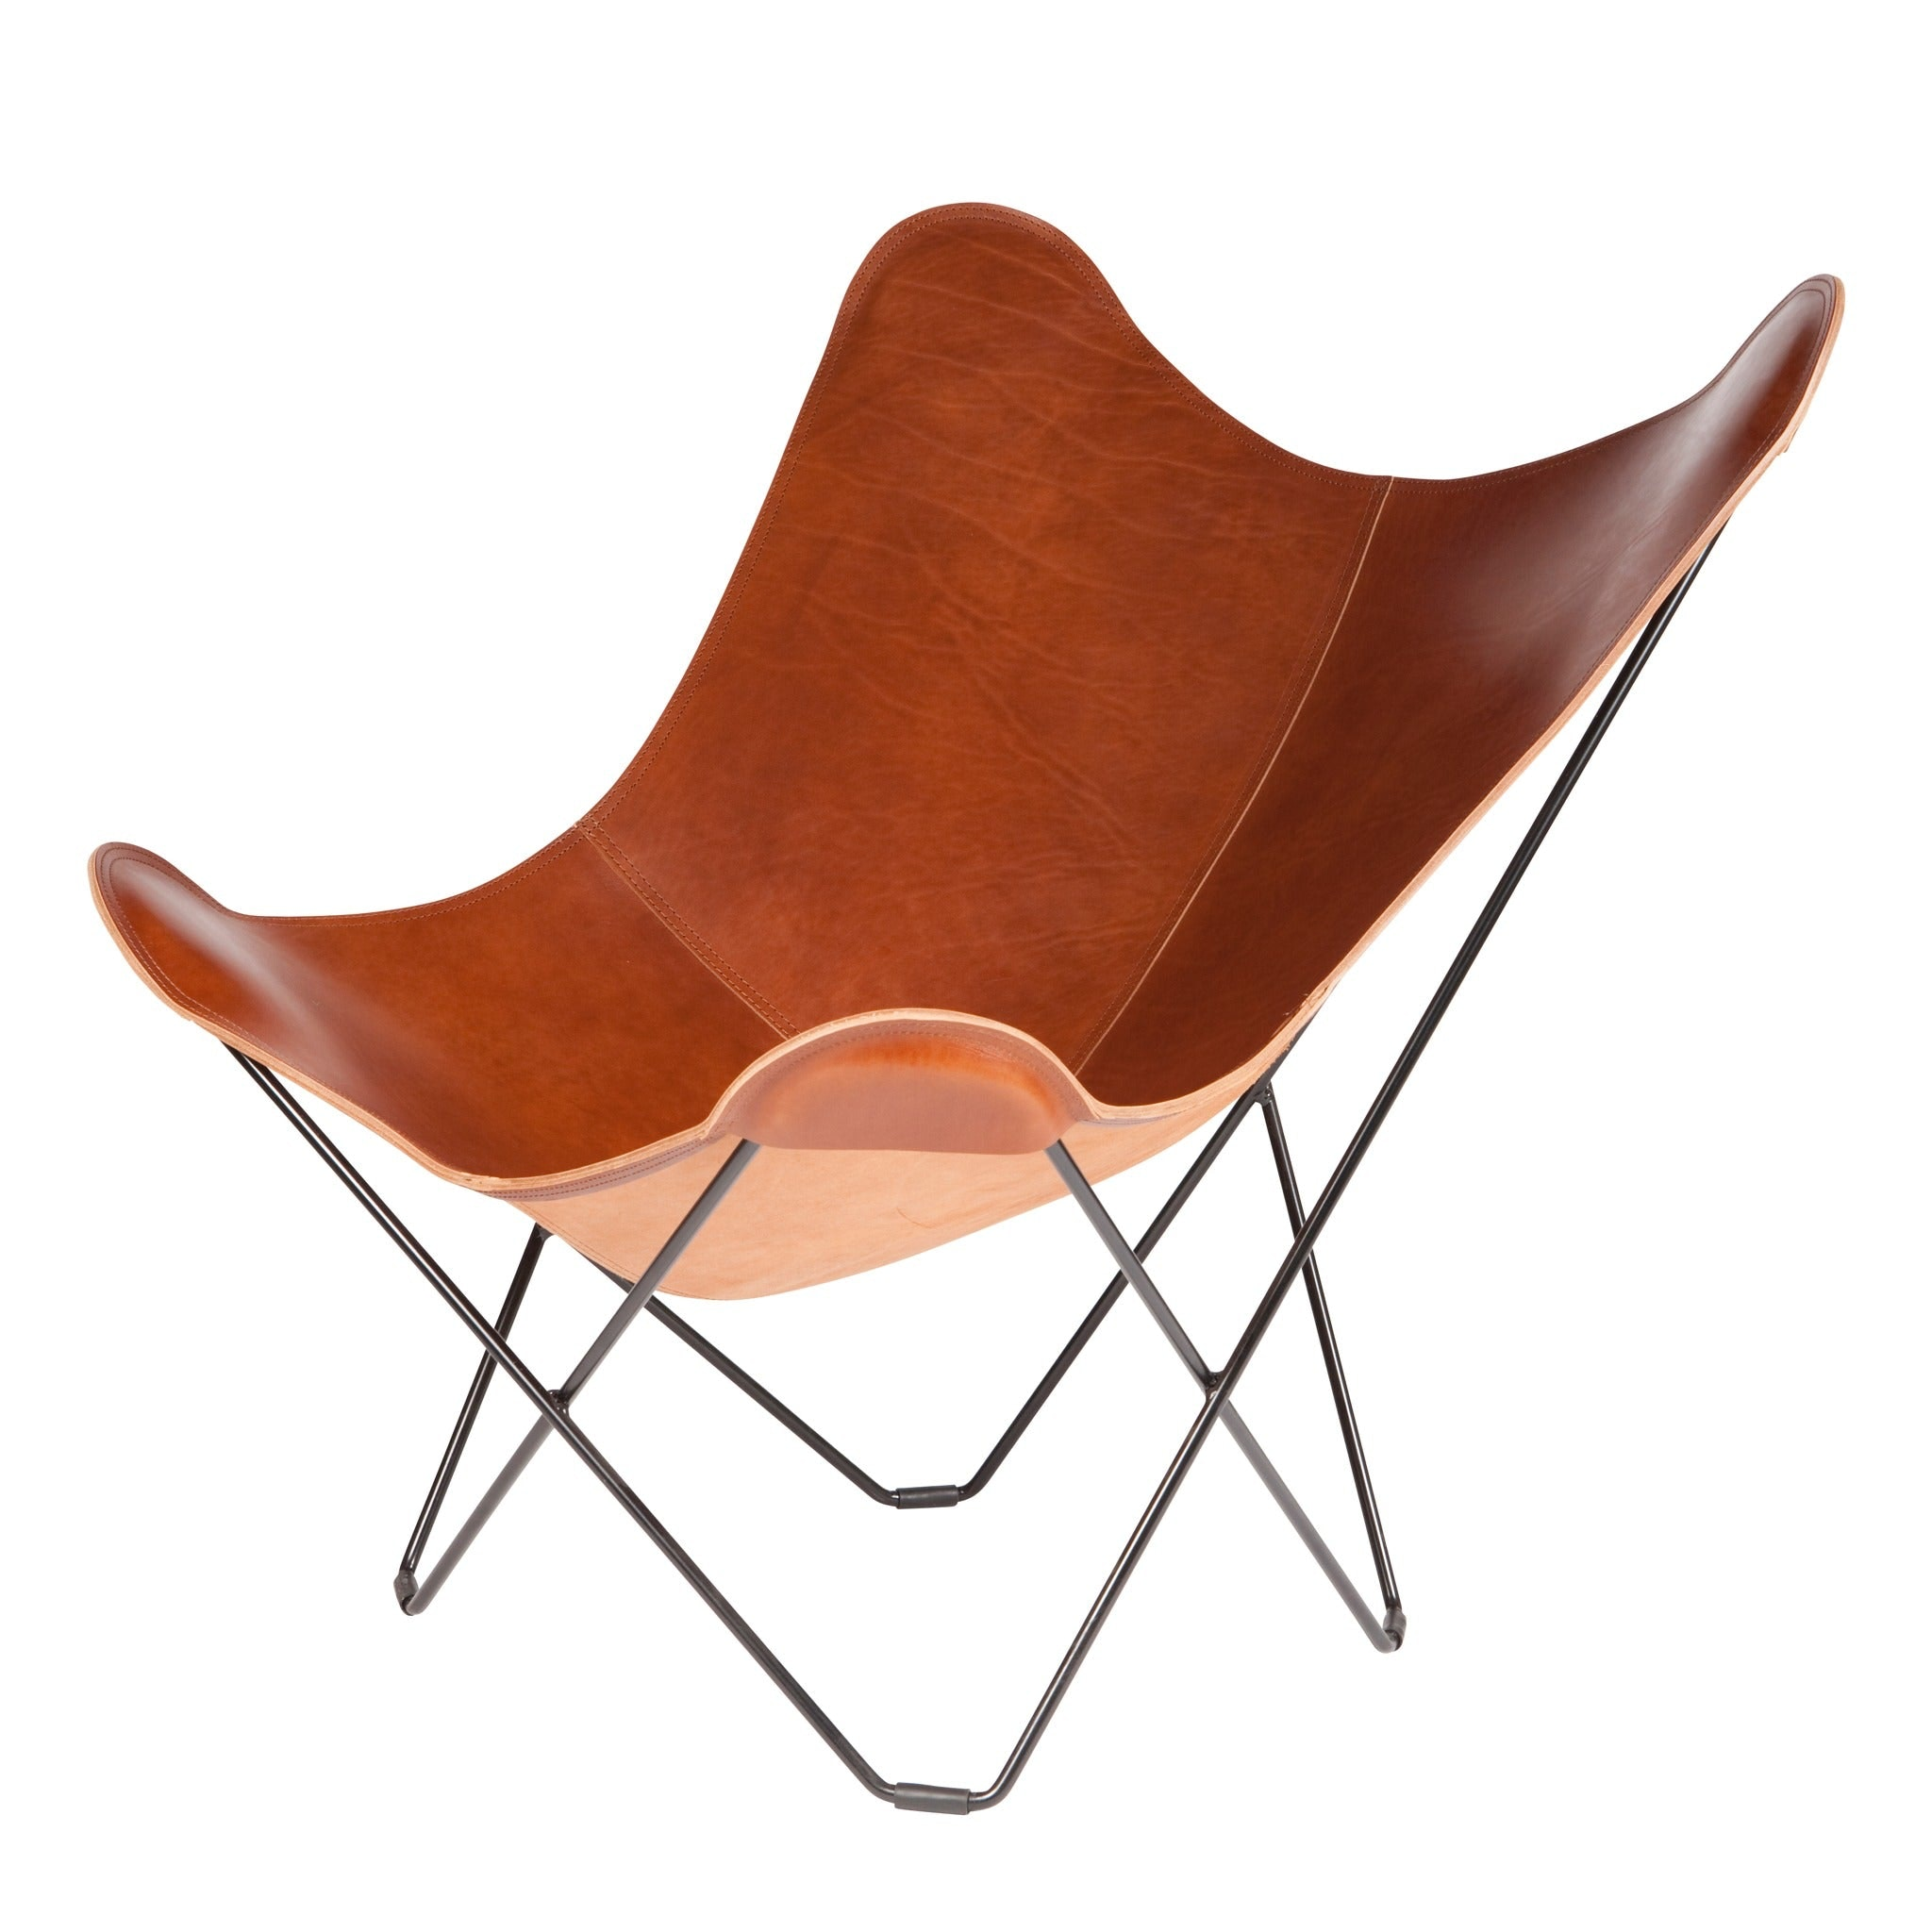 Mariposa Butterfly Leather Chair by Cuero